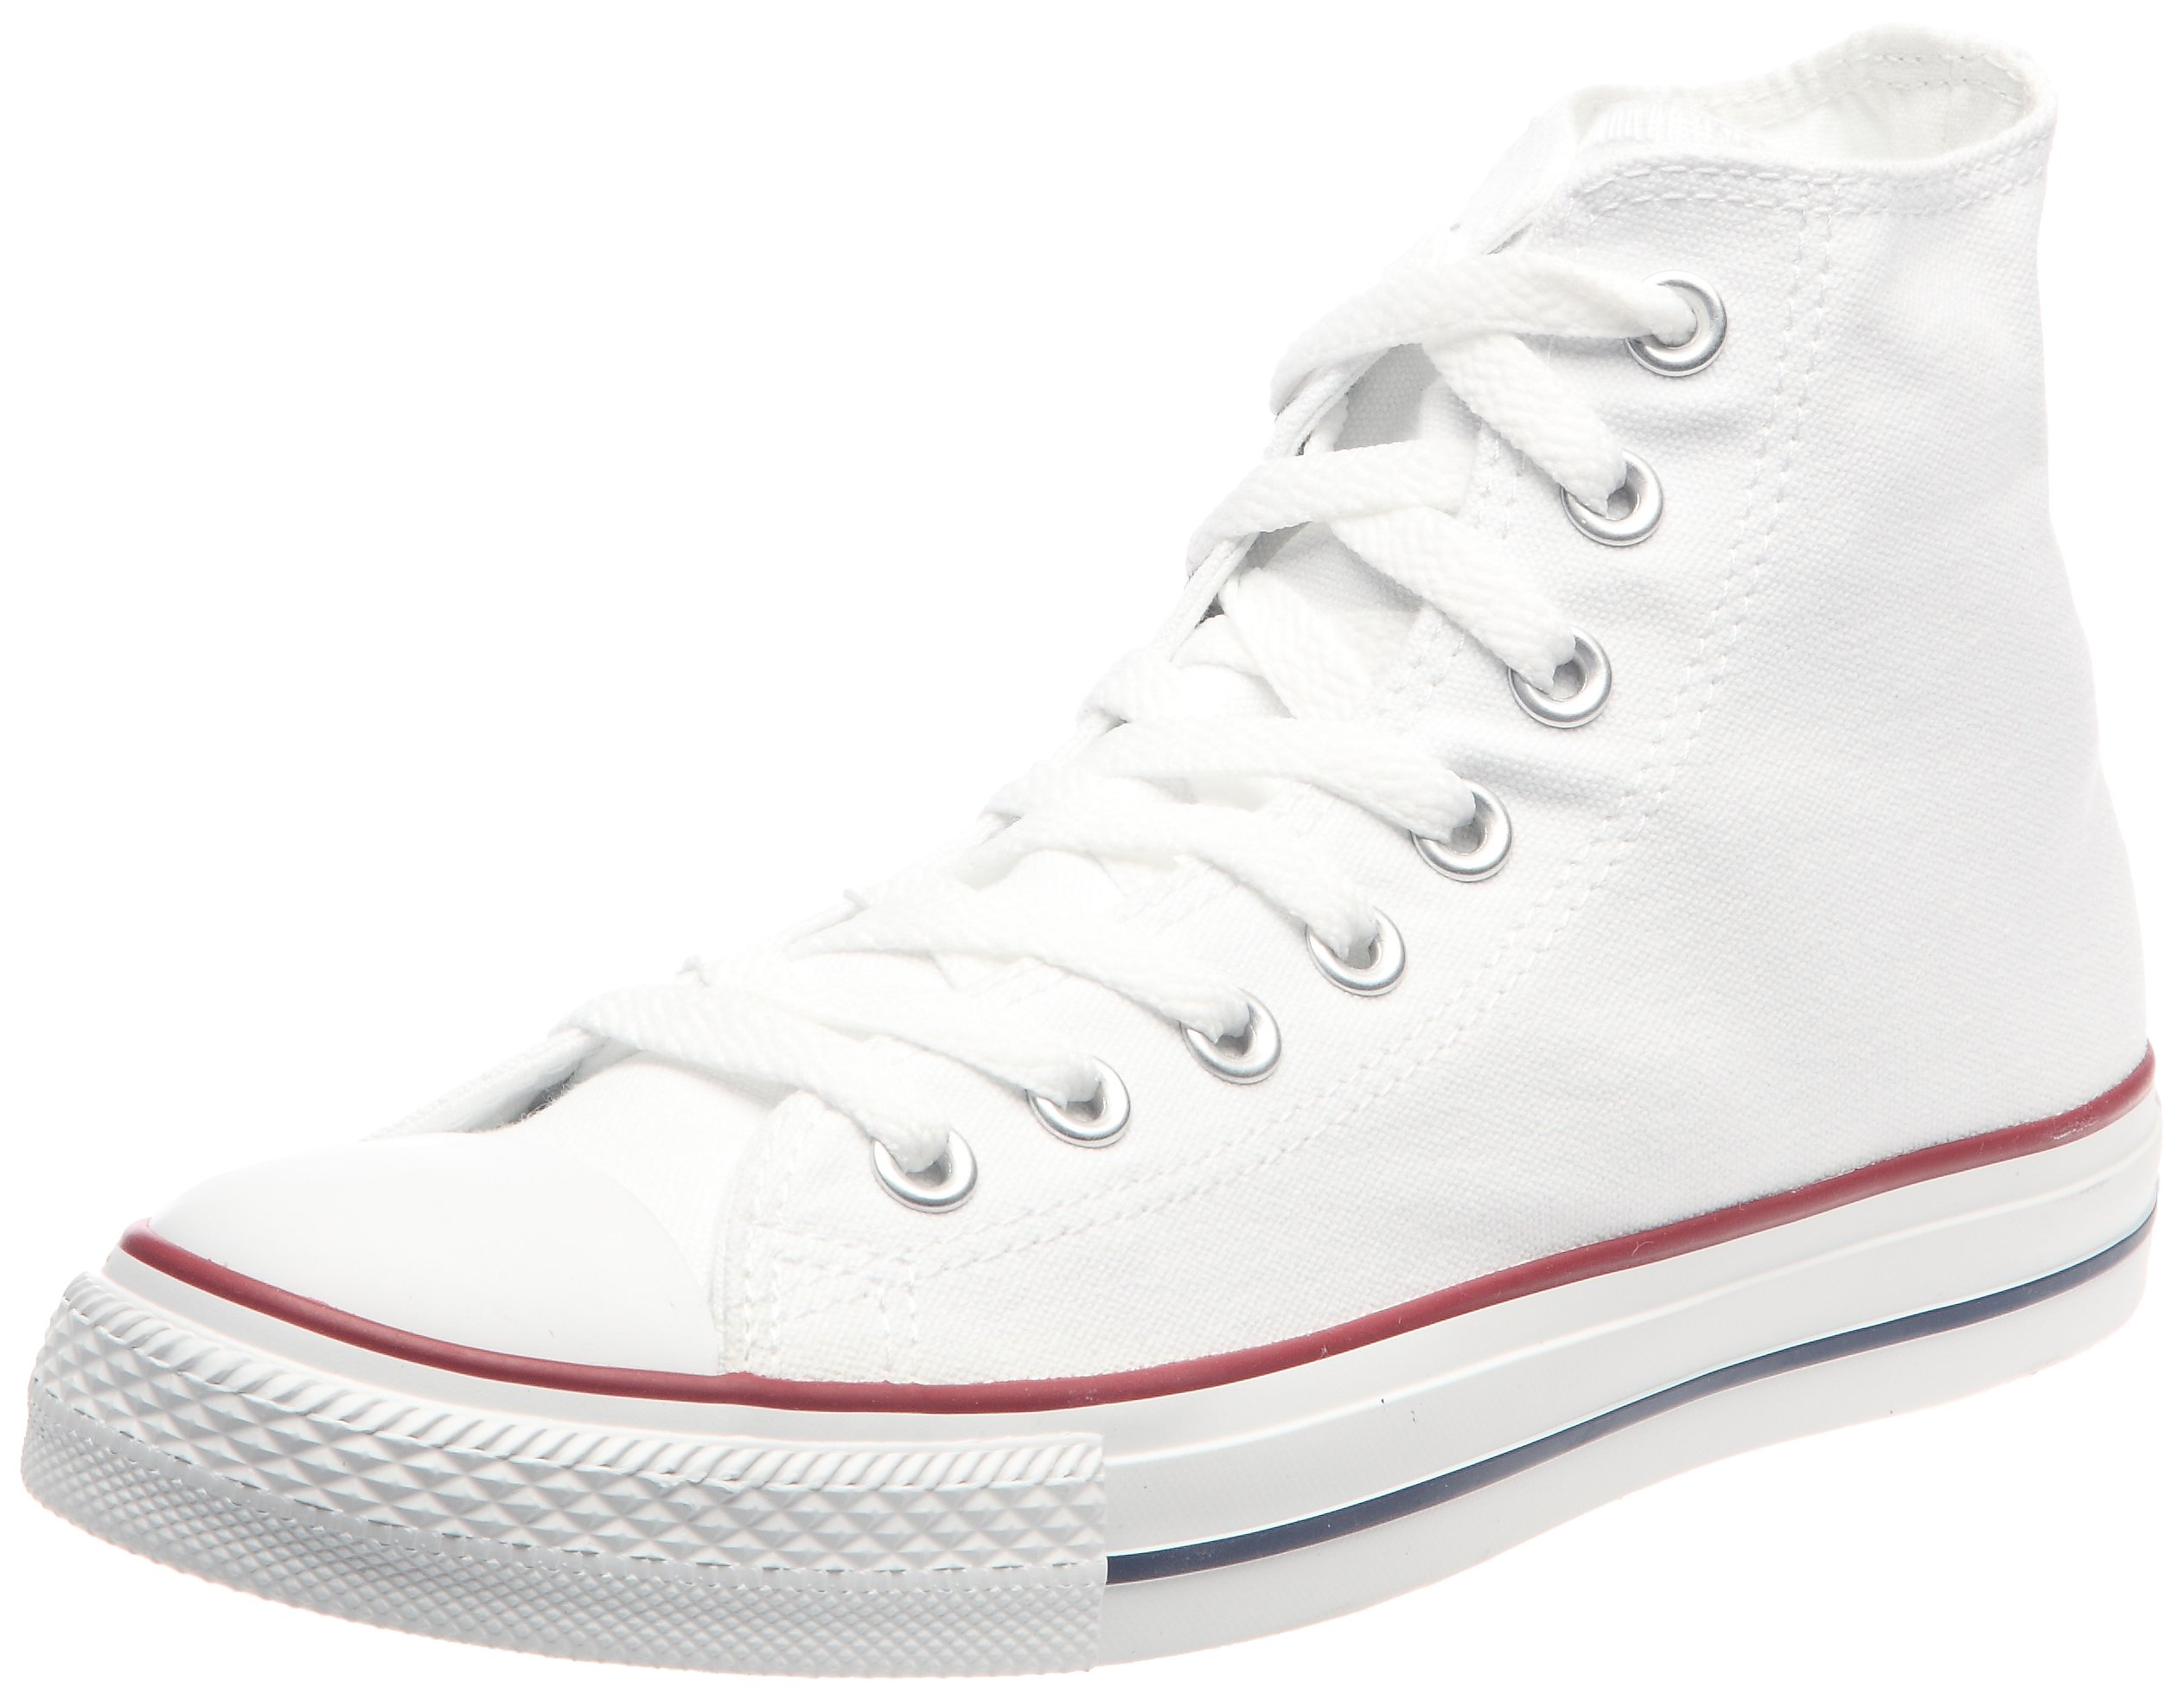 bb882e22ad32 Galleon - Converse Mens All Star Hi Top Chuck Taylor Chucks Sneaker Trainer  - Optical White - 11.5